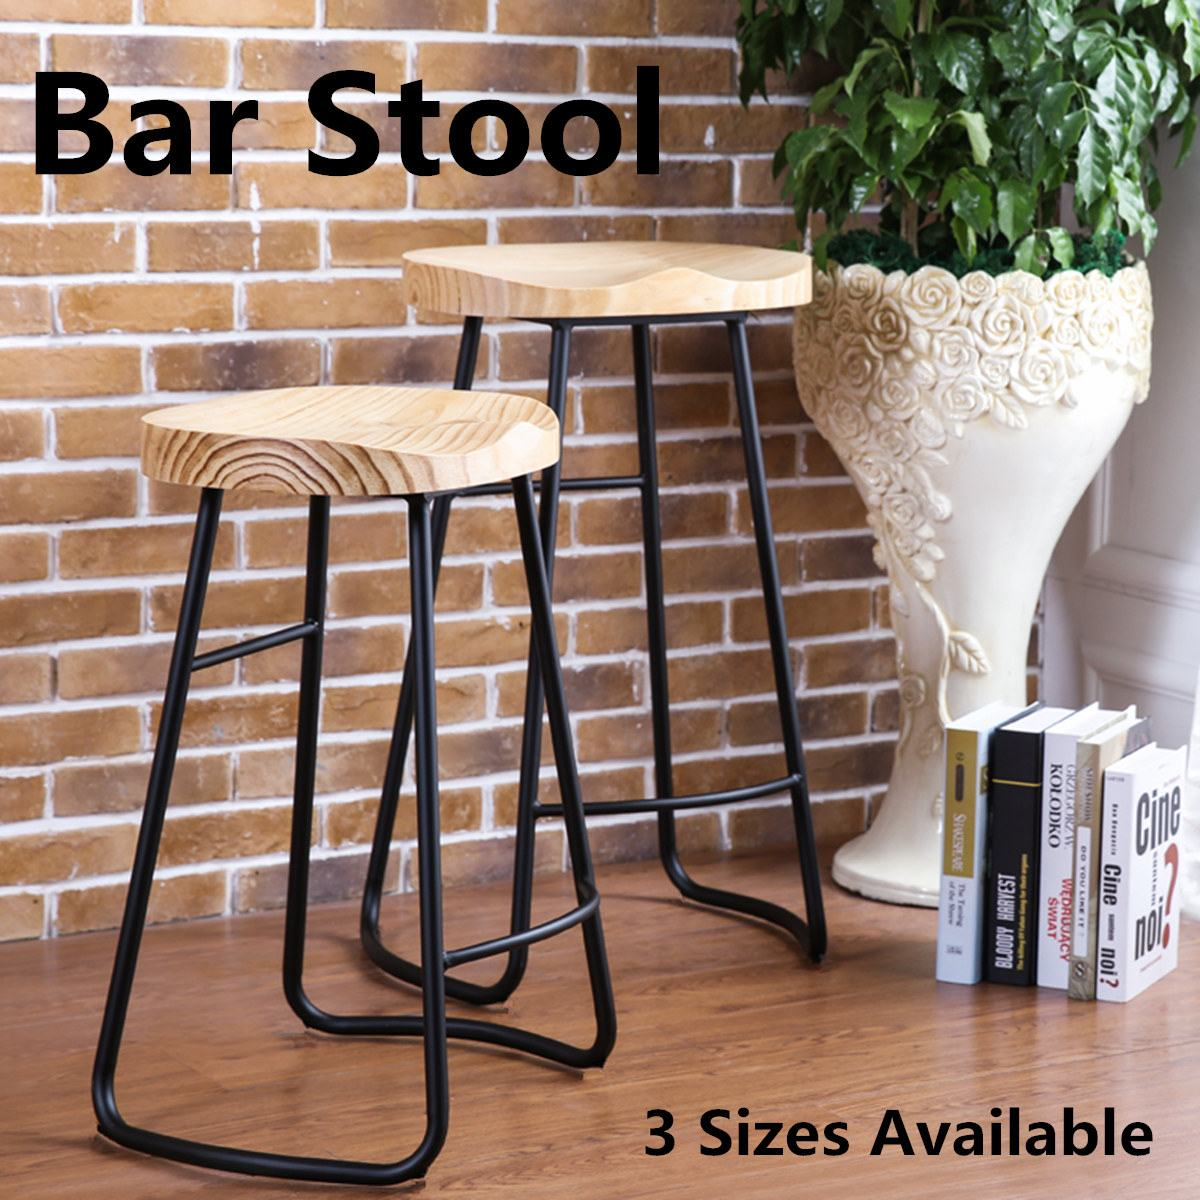 Bar Stools 45/60/75cm Vintage Industrial Bar Stool Retro Counter Seat Retro Pub Kitchen Metal Wood Chair Outdoor Bar Furniture Decoration Warm And Windproof Bar Furniture